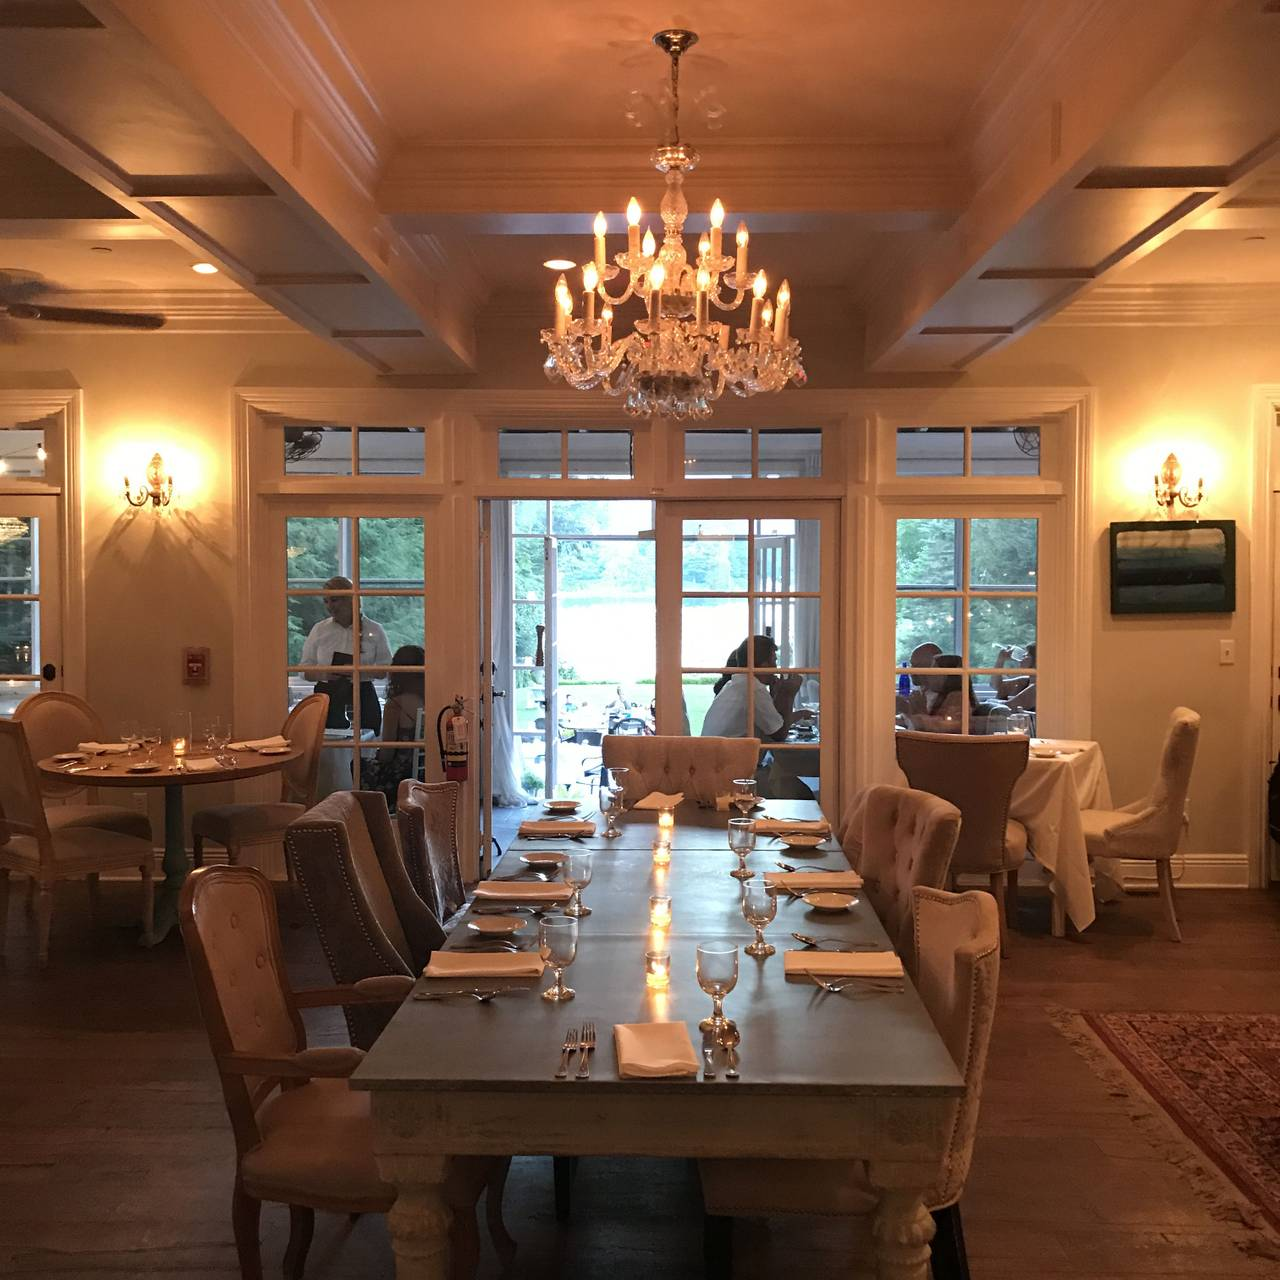 The Chateau On The Lake Restaurant Bolton Landing Ny